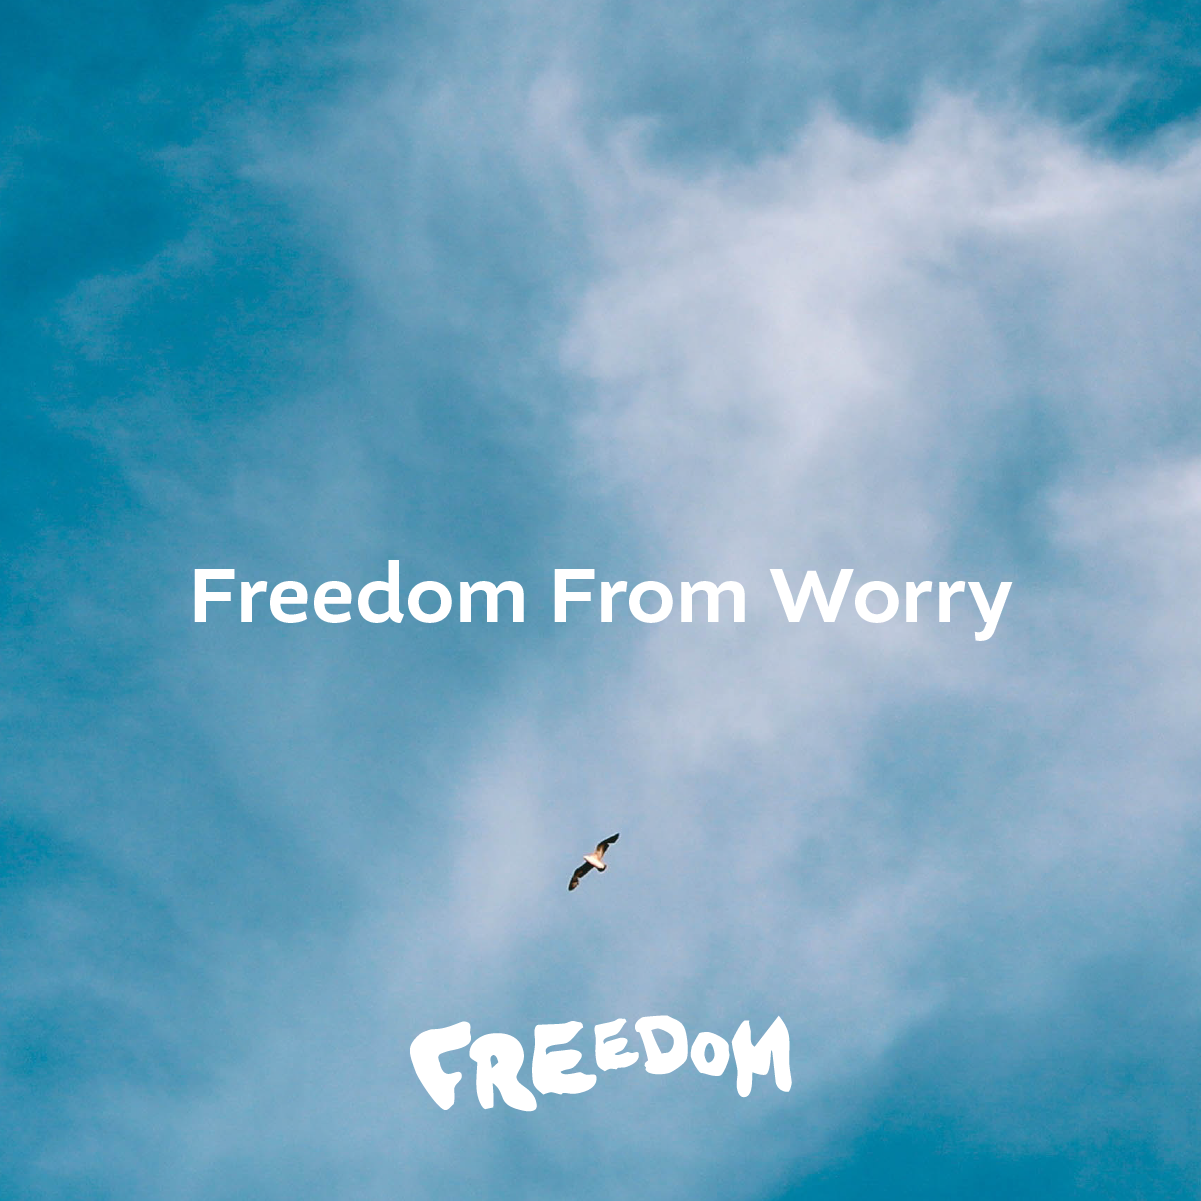 FREEDOM - Freedom From Worry